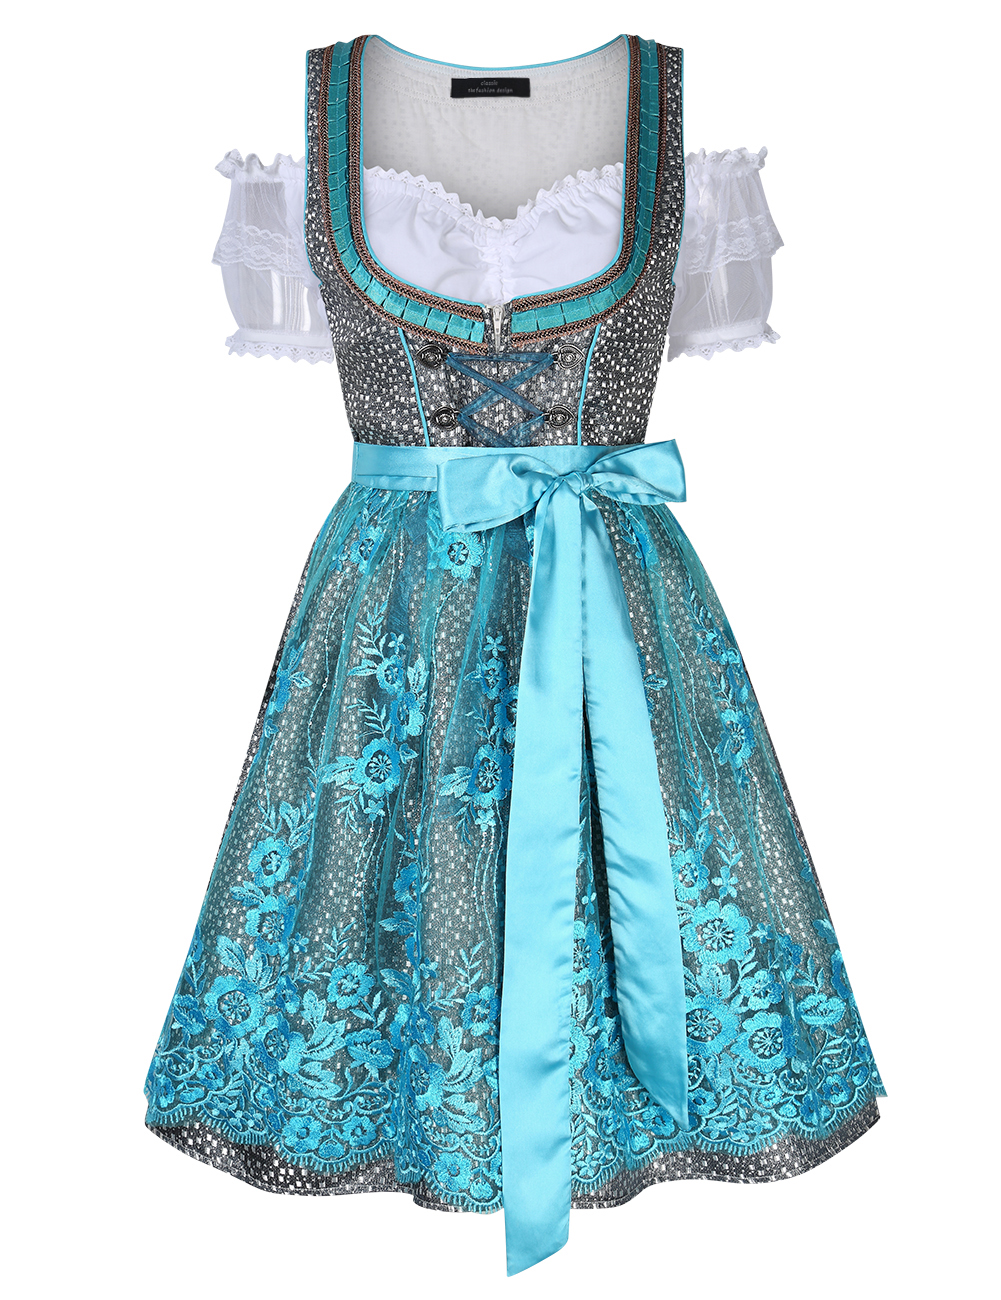 [EU Direct] Women's Oktoberfest Sexy Lace Floral Lace Up Tie Pleated Layered Dress Suit